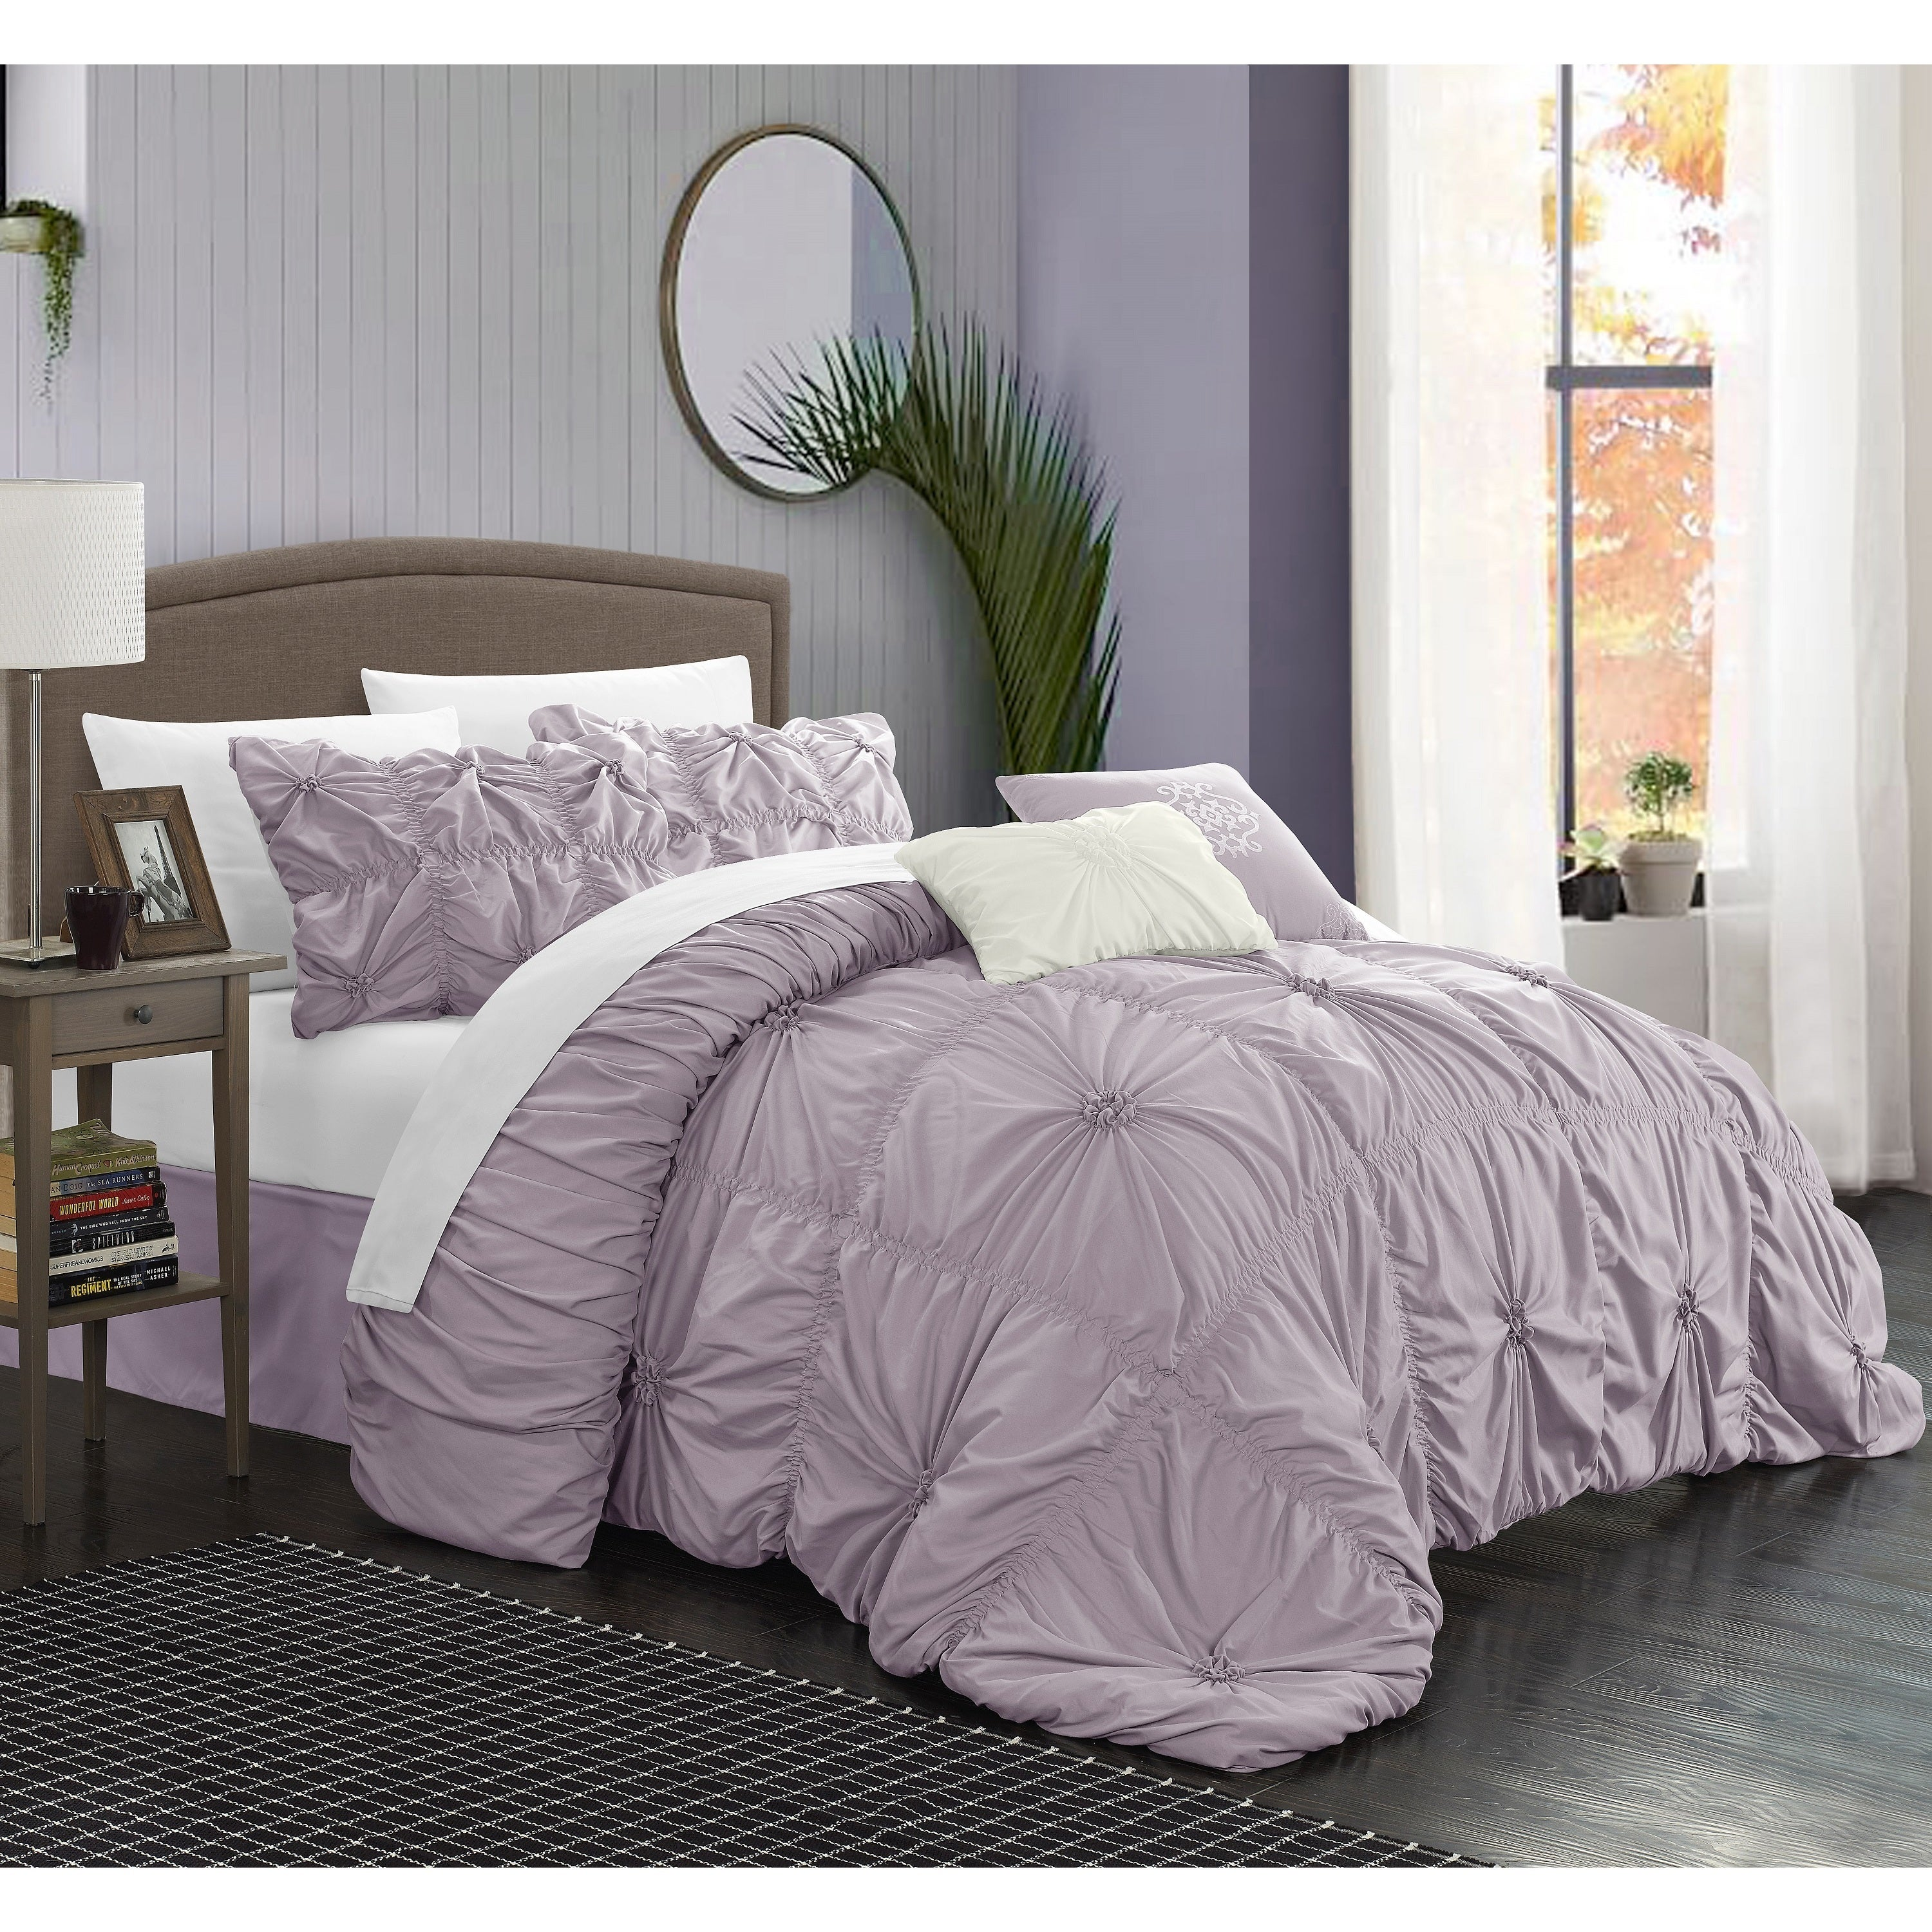 purple bedding comforters comforter with covers click duvet and horse enlarge cover to here